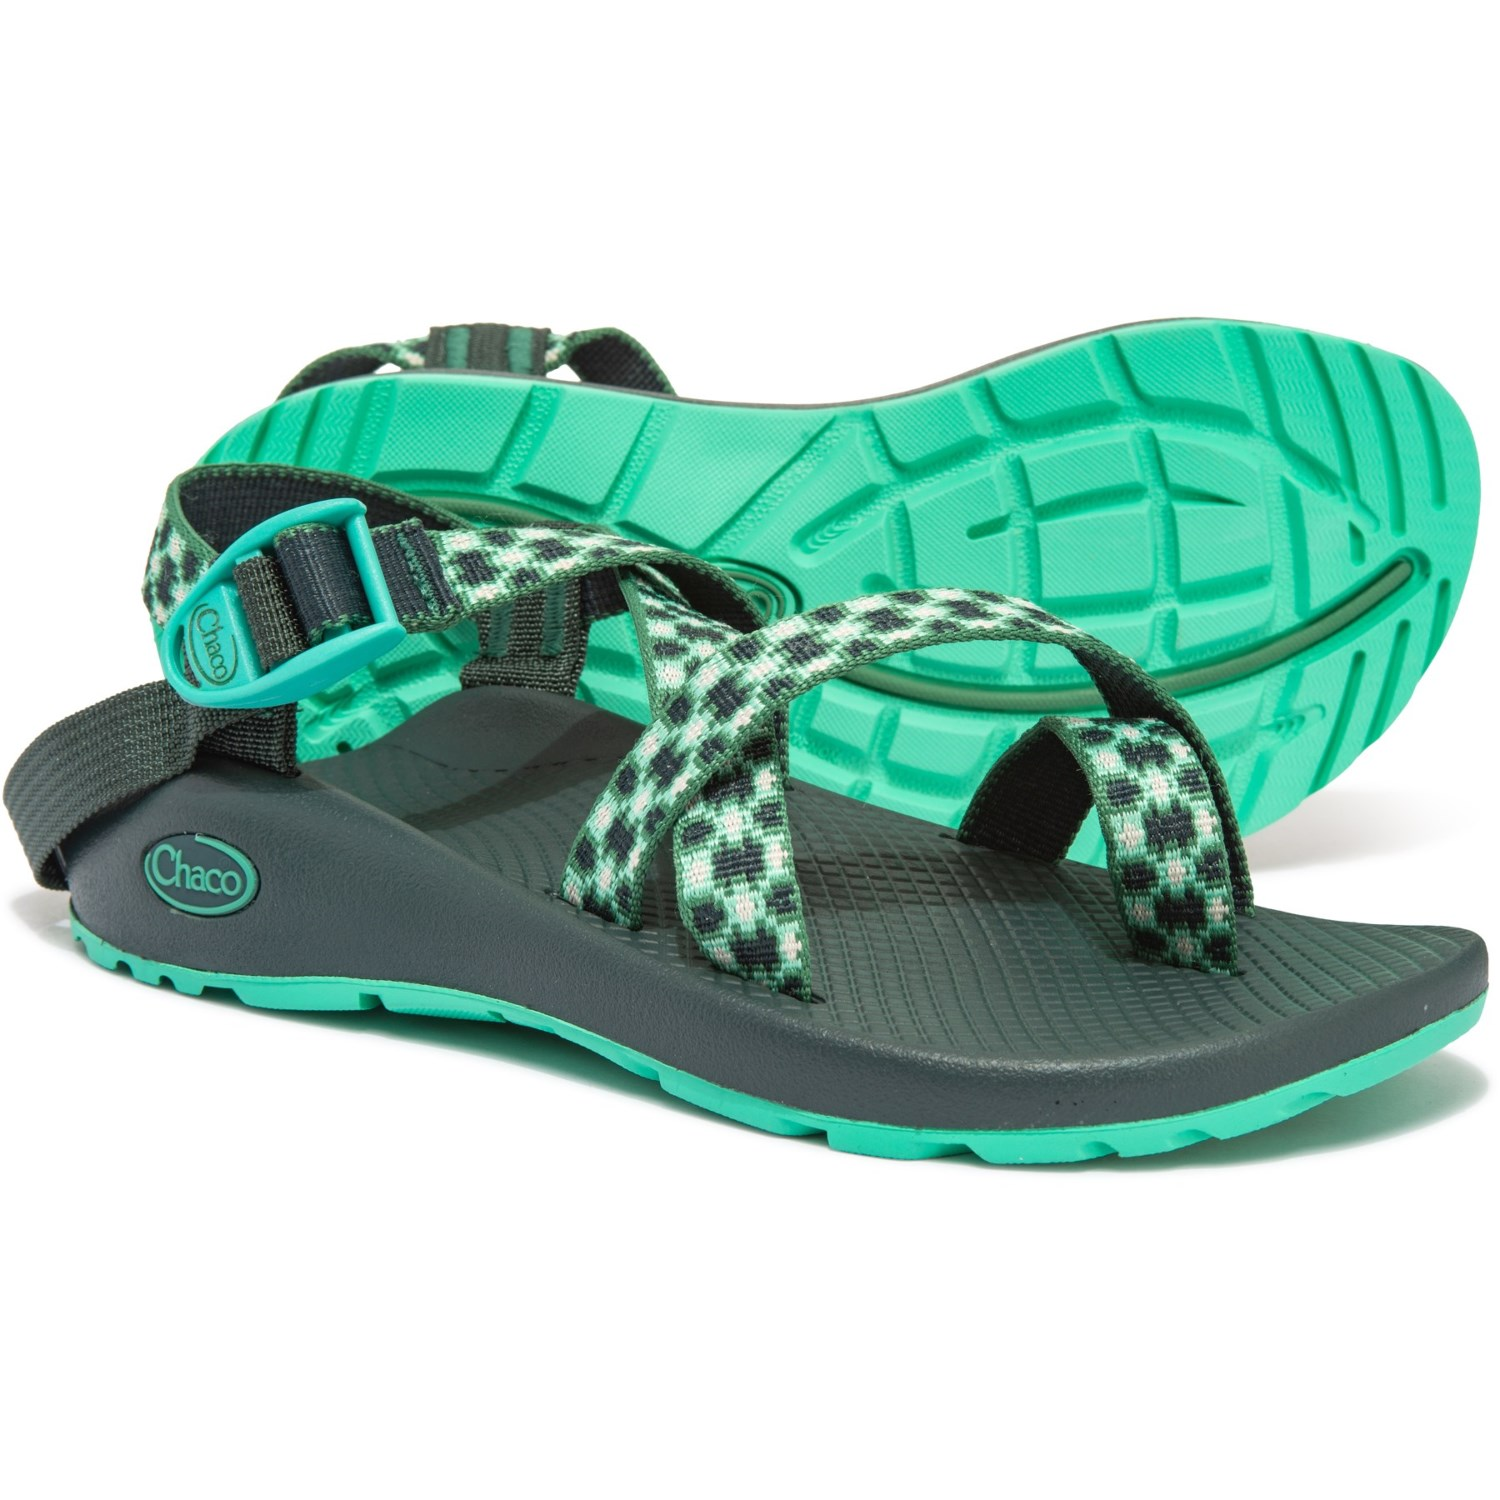 0563f92d8f47 Chaco Z 2 Classic Sport Sandals (For Women) - Save 42%